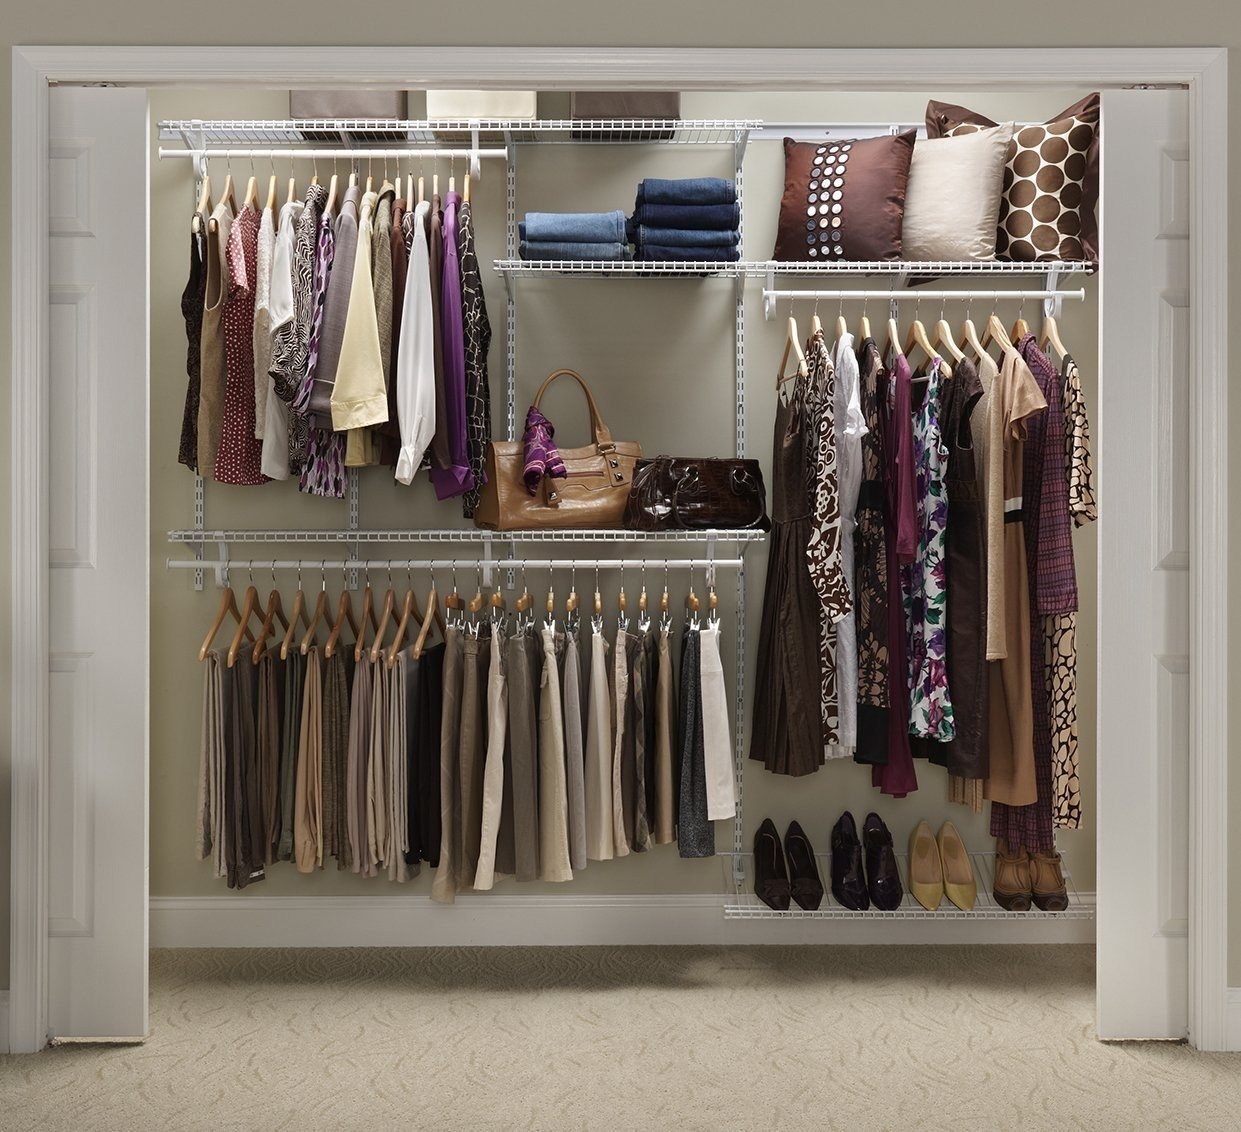 Superior An Complete Closet Organizing System That Does The Job Of Permanent Shelves  Inside An Unfinished Closet